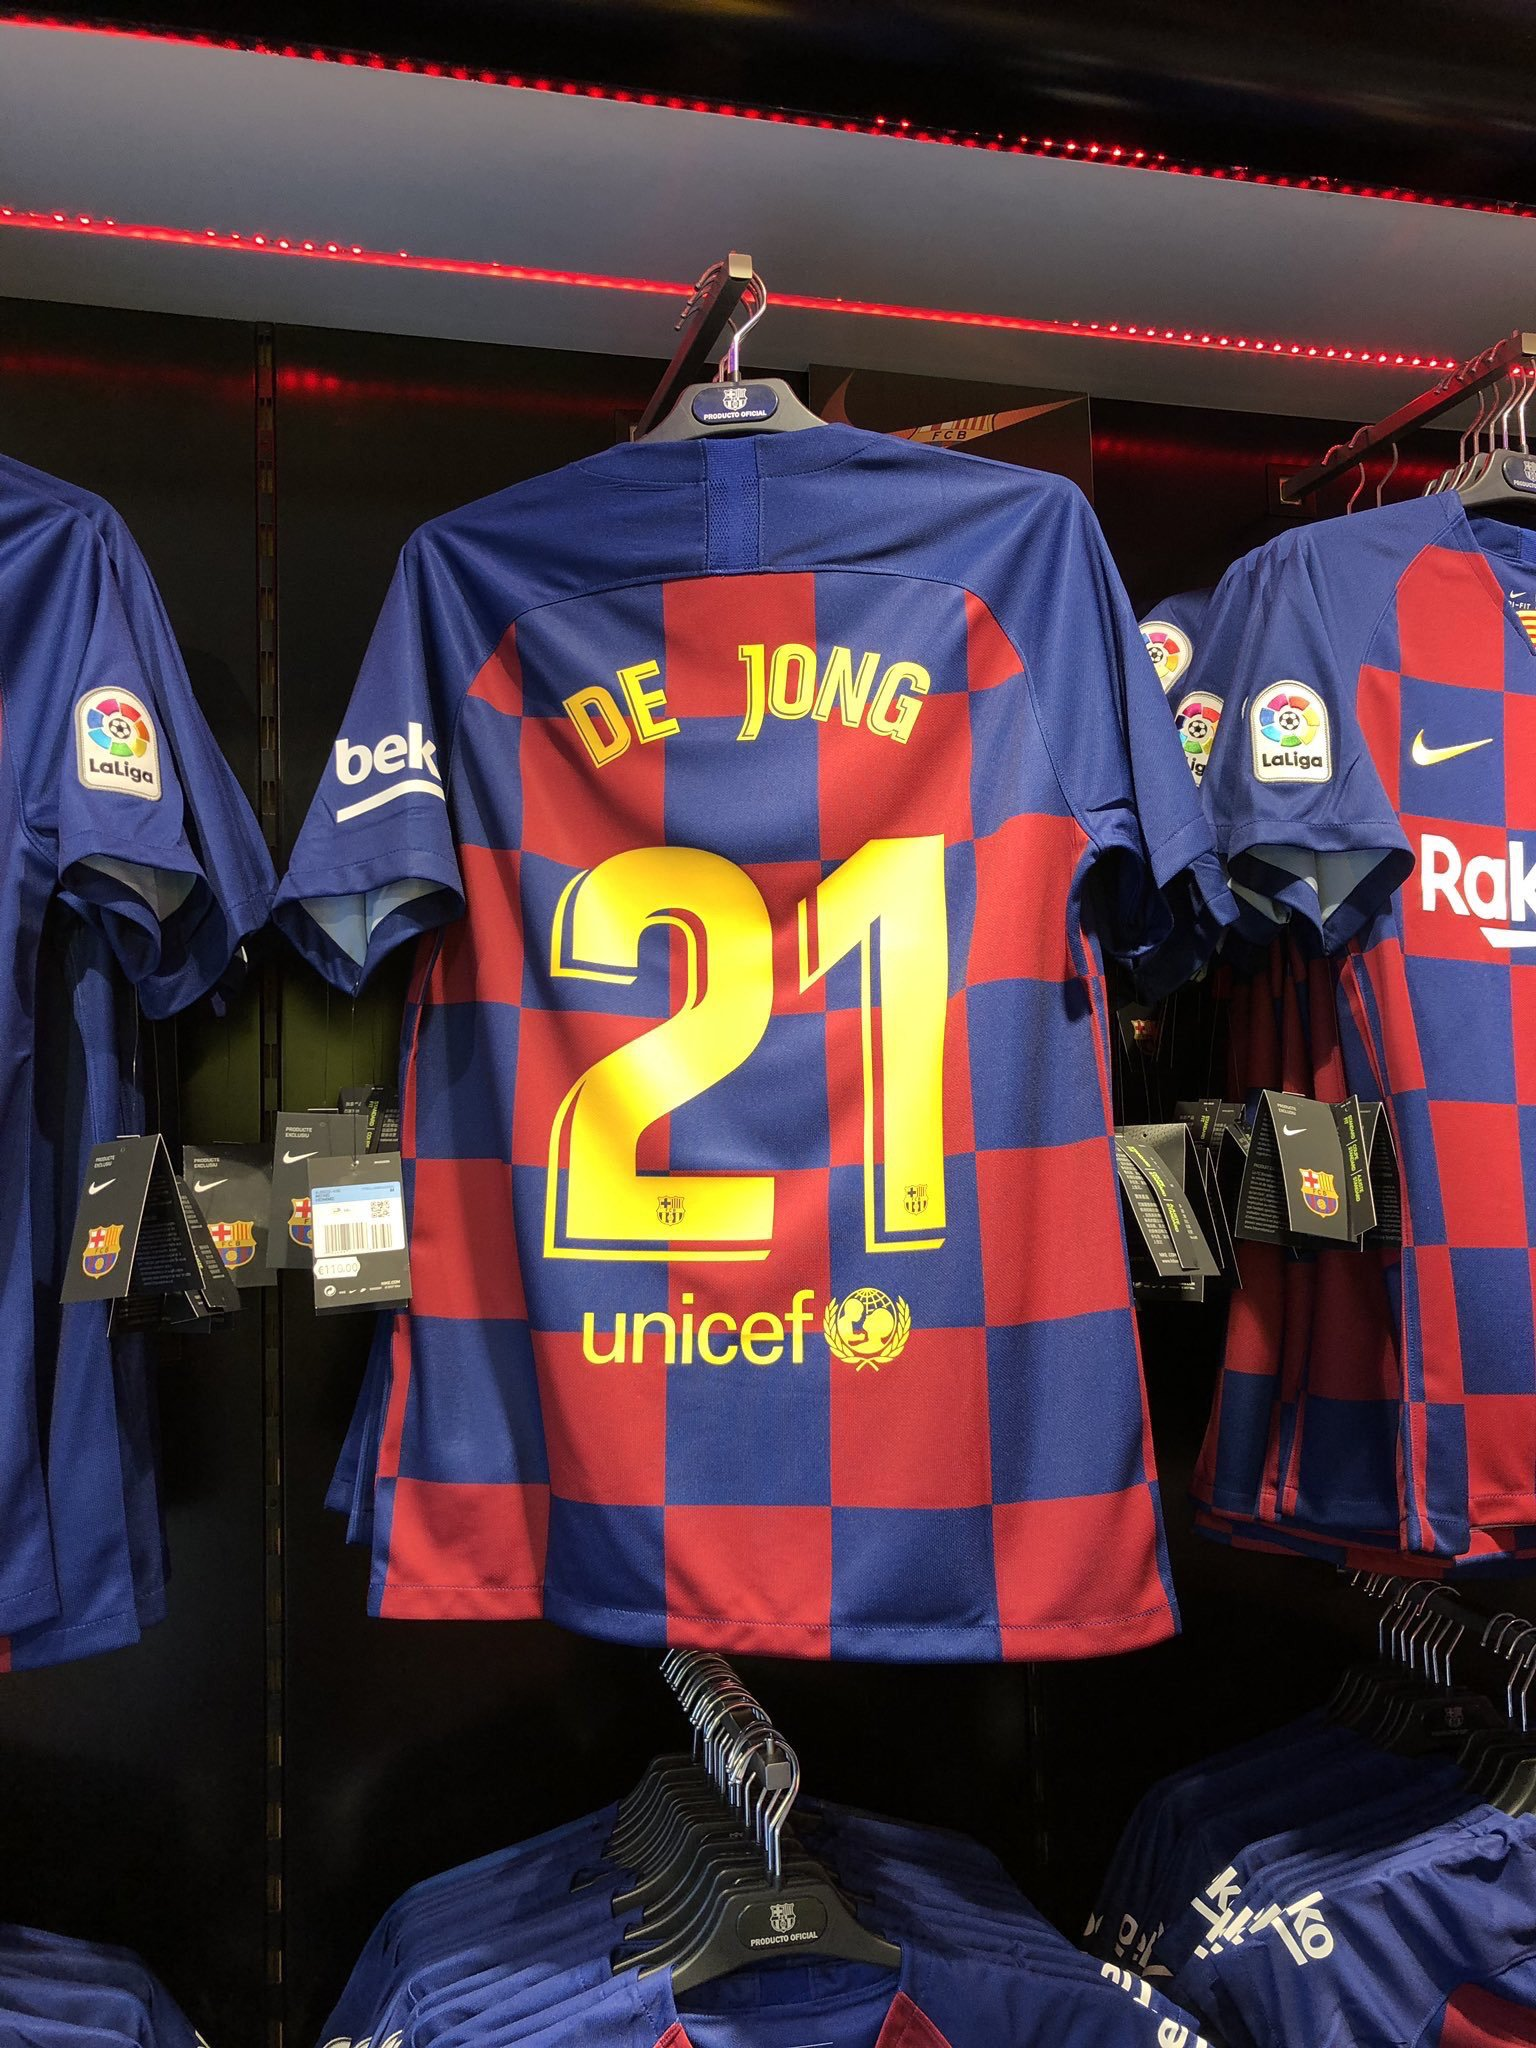 separation shoes 08862 47949 Revealed: De Jong is set to wear Carles Alena's number on ...